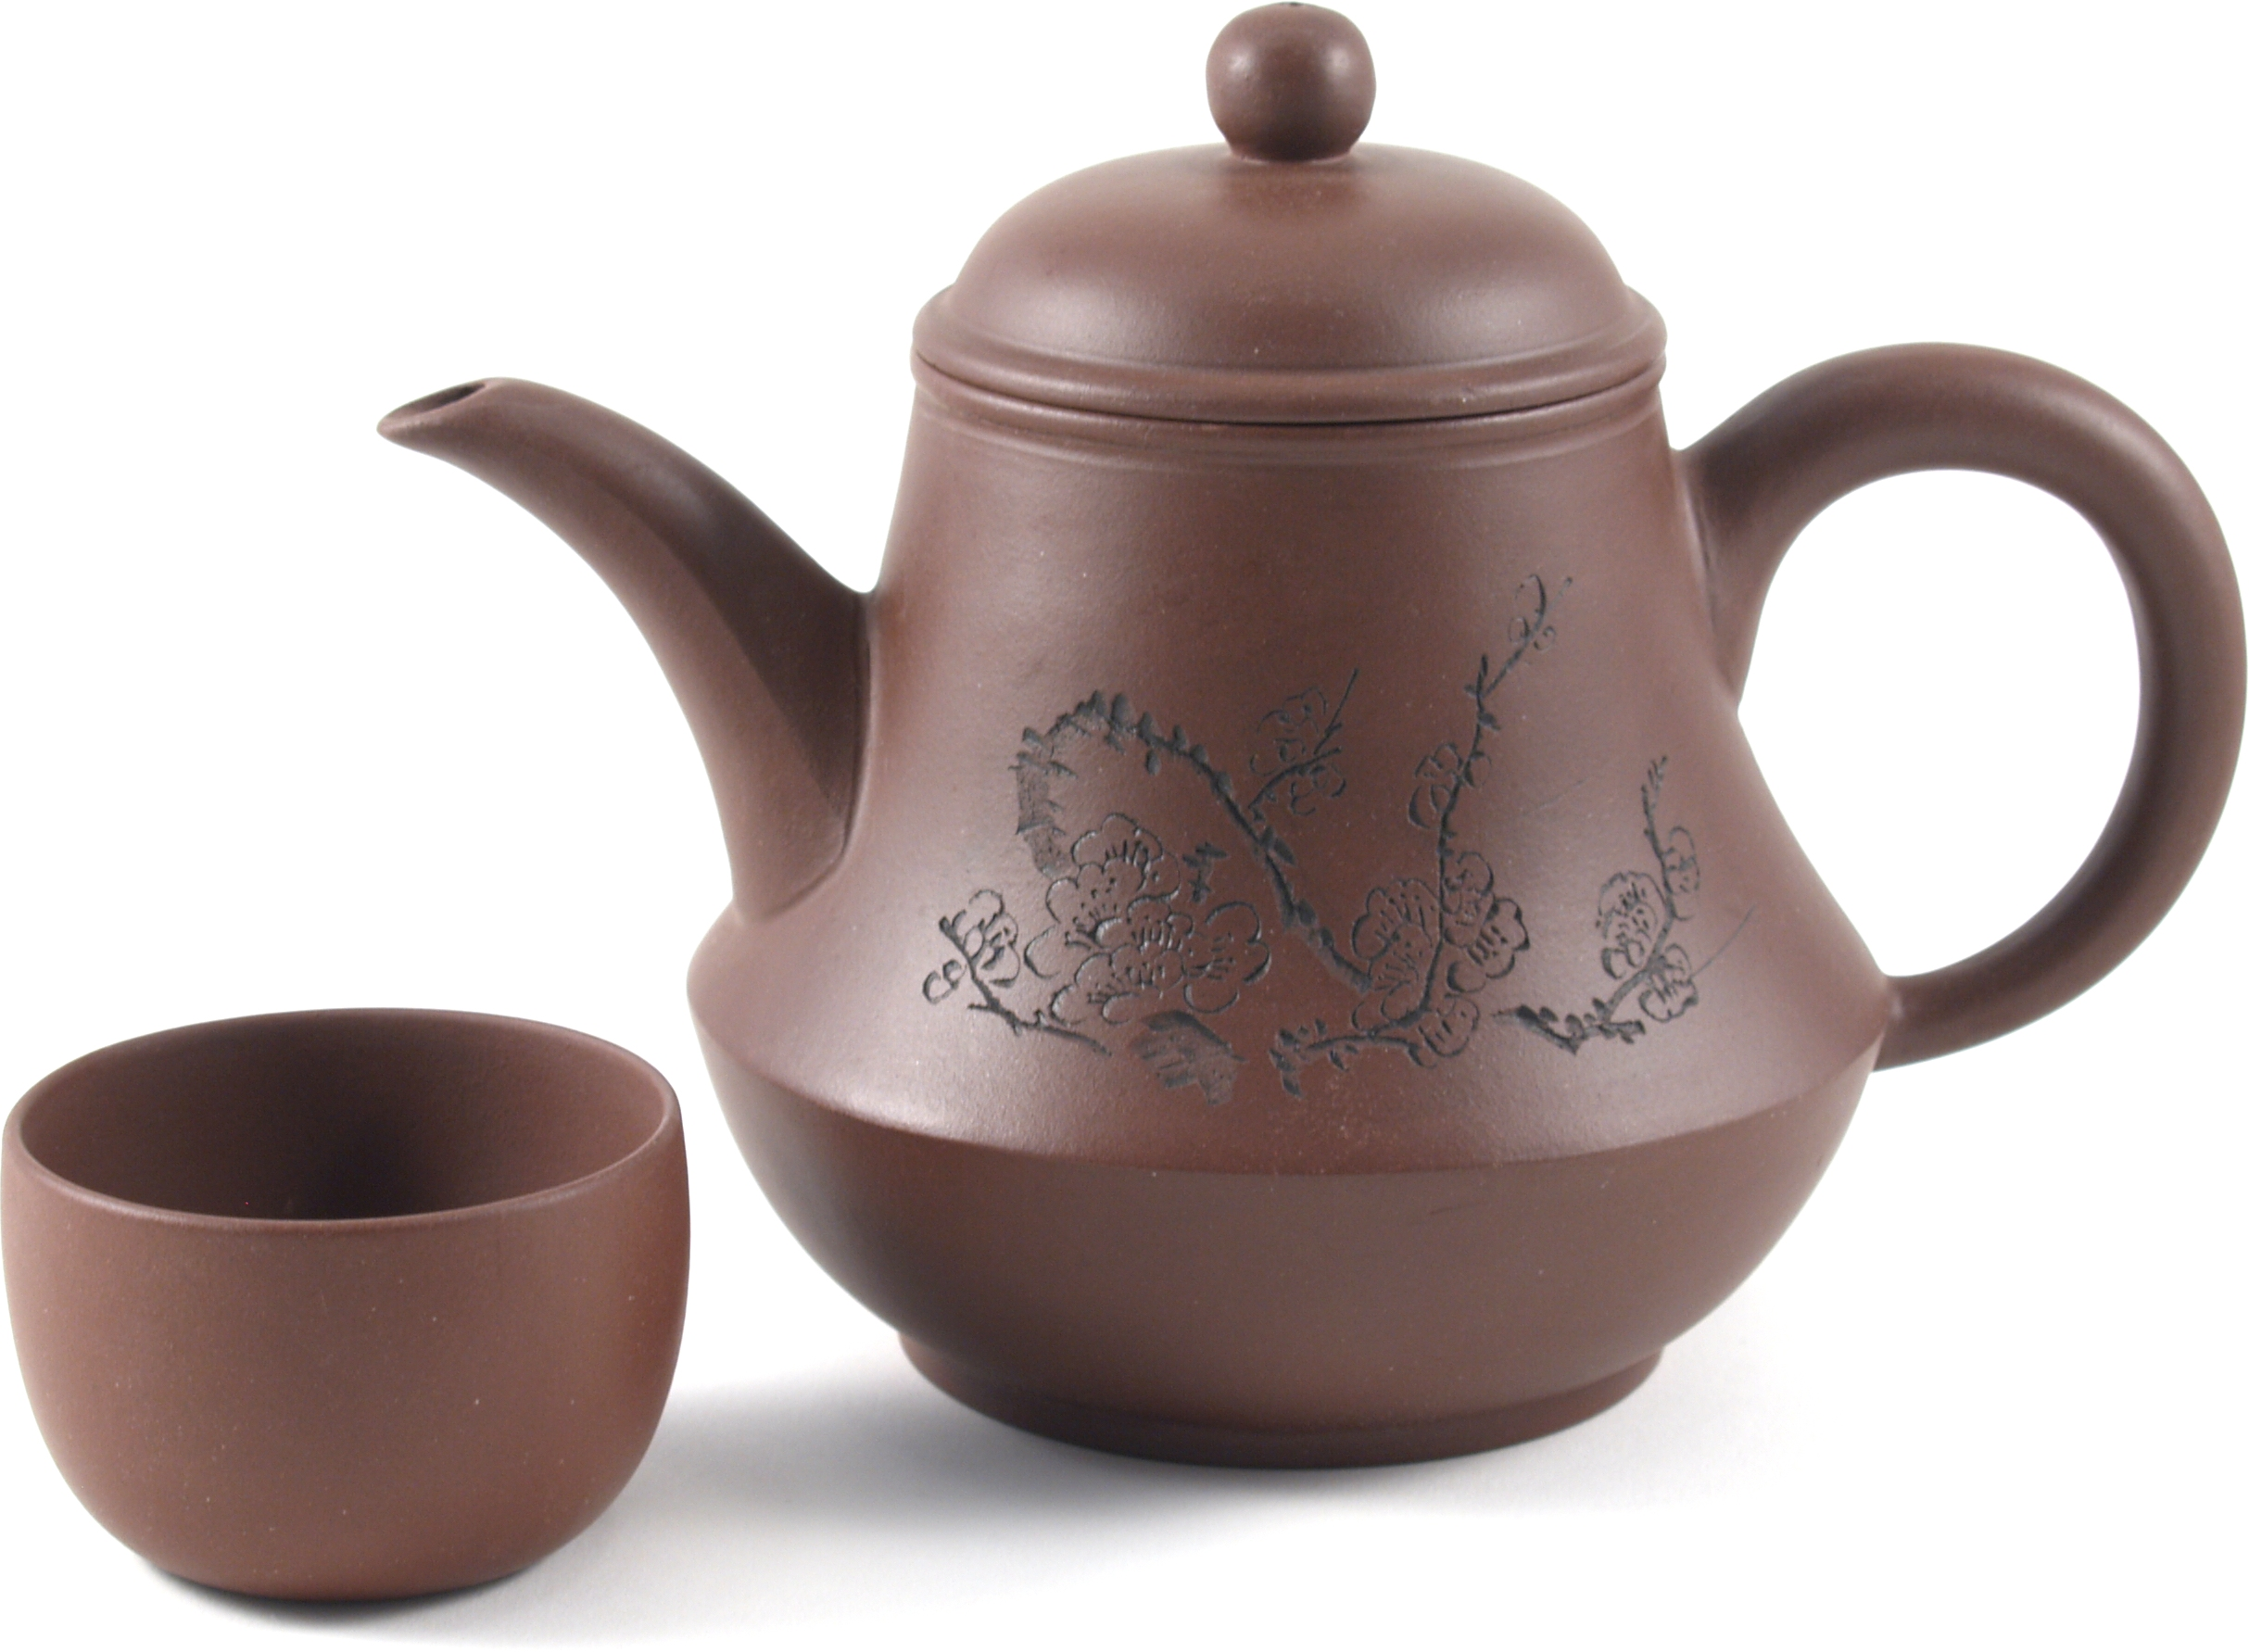 Light Brown Yixing Teapot with Flower Etchings and 4 Teacups